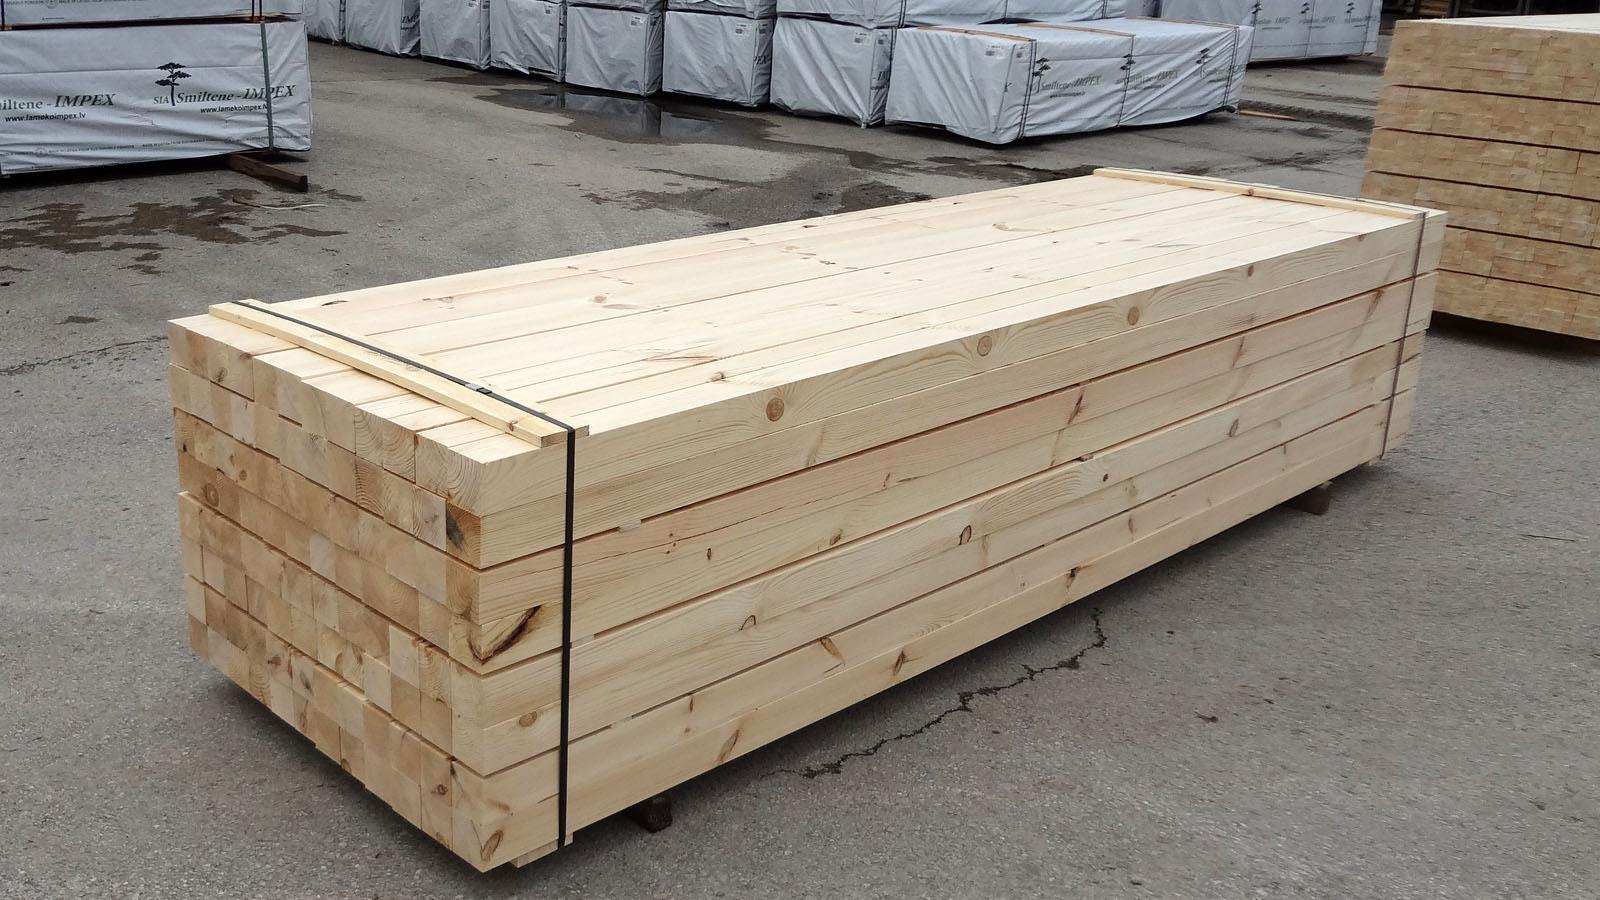 5-decking-components-nothern-europe-timber-production-lameko-impex